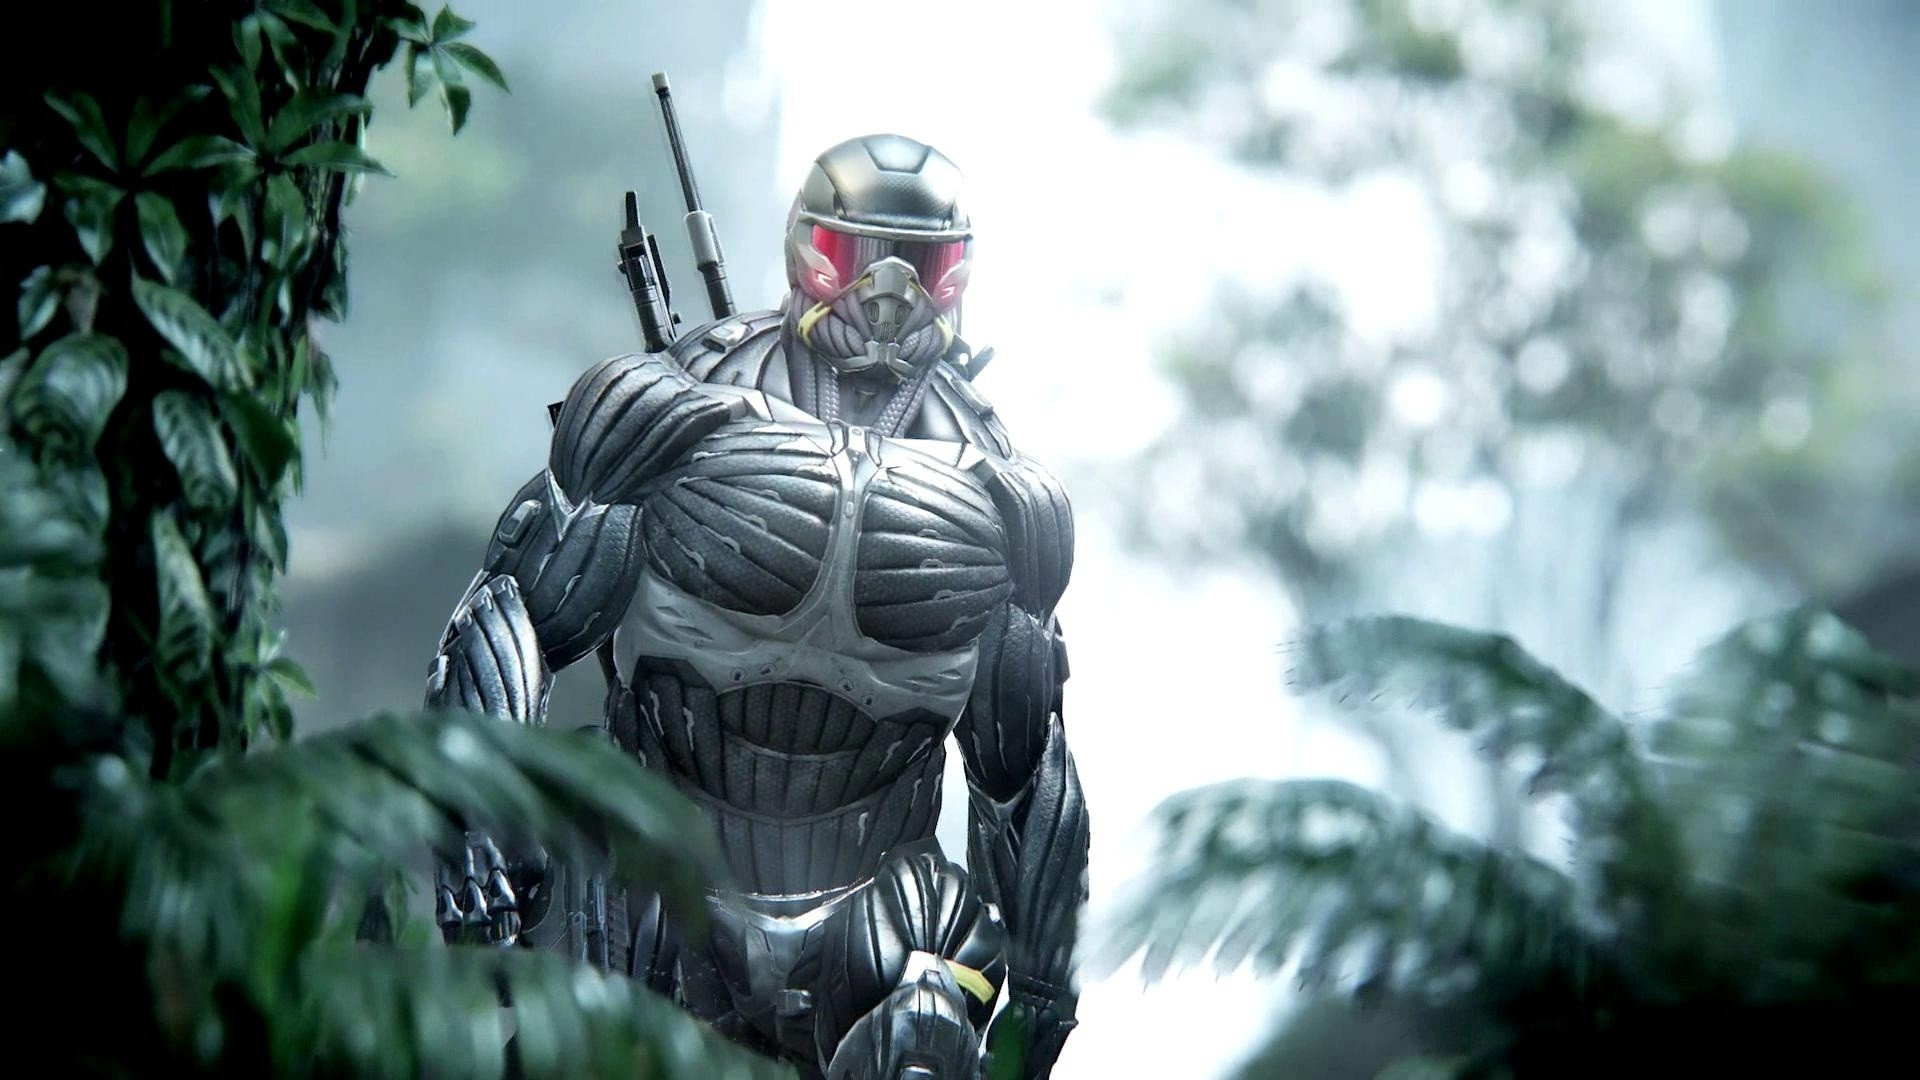 crysis 4 wallpaper hd - photo #9